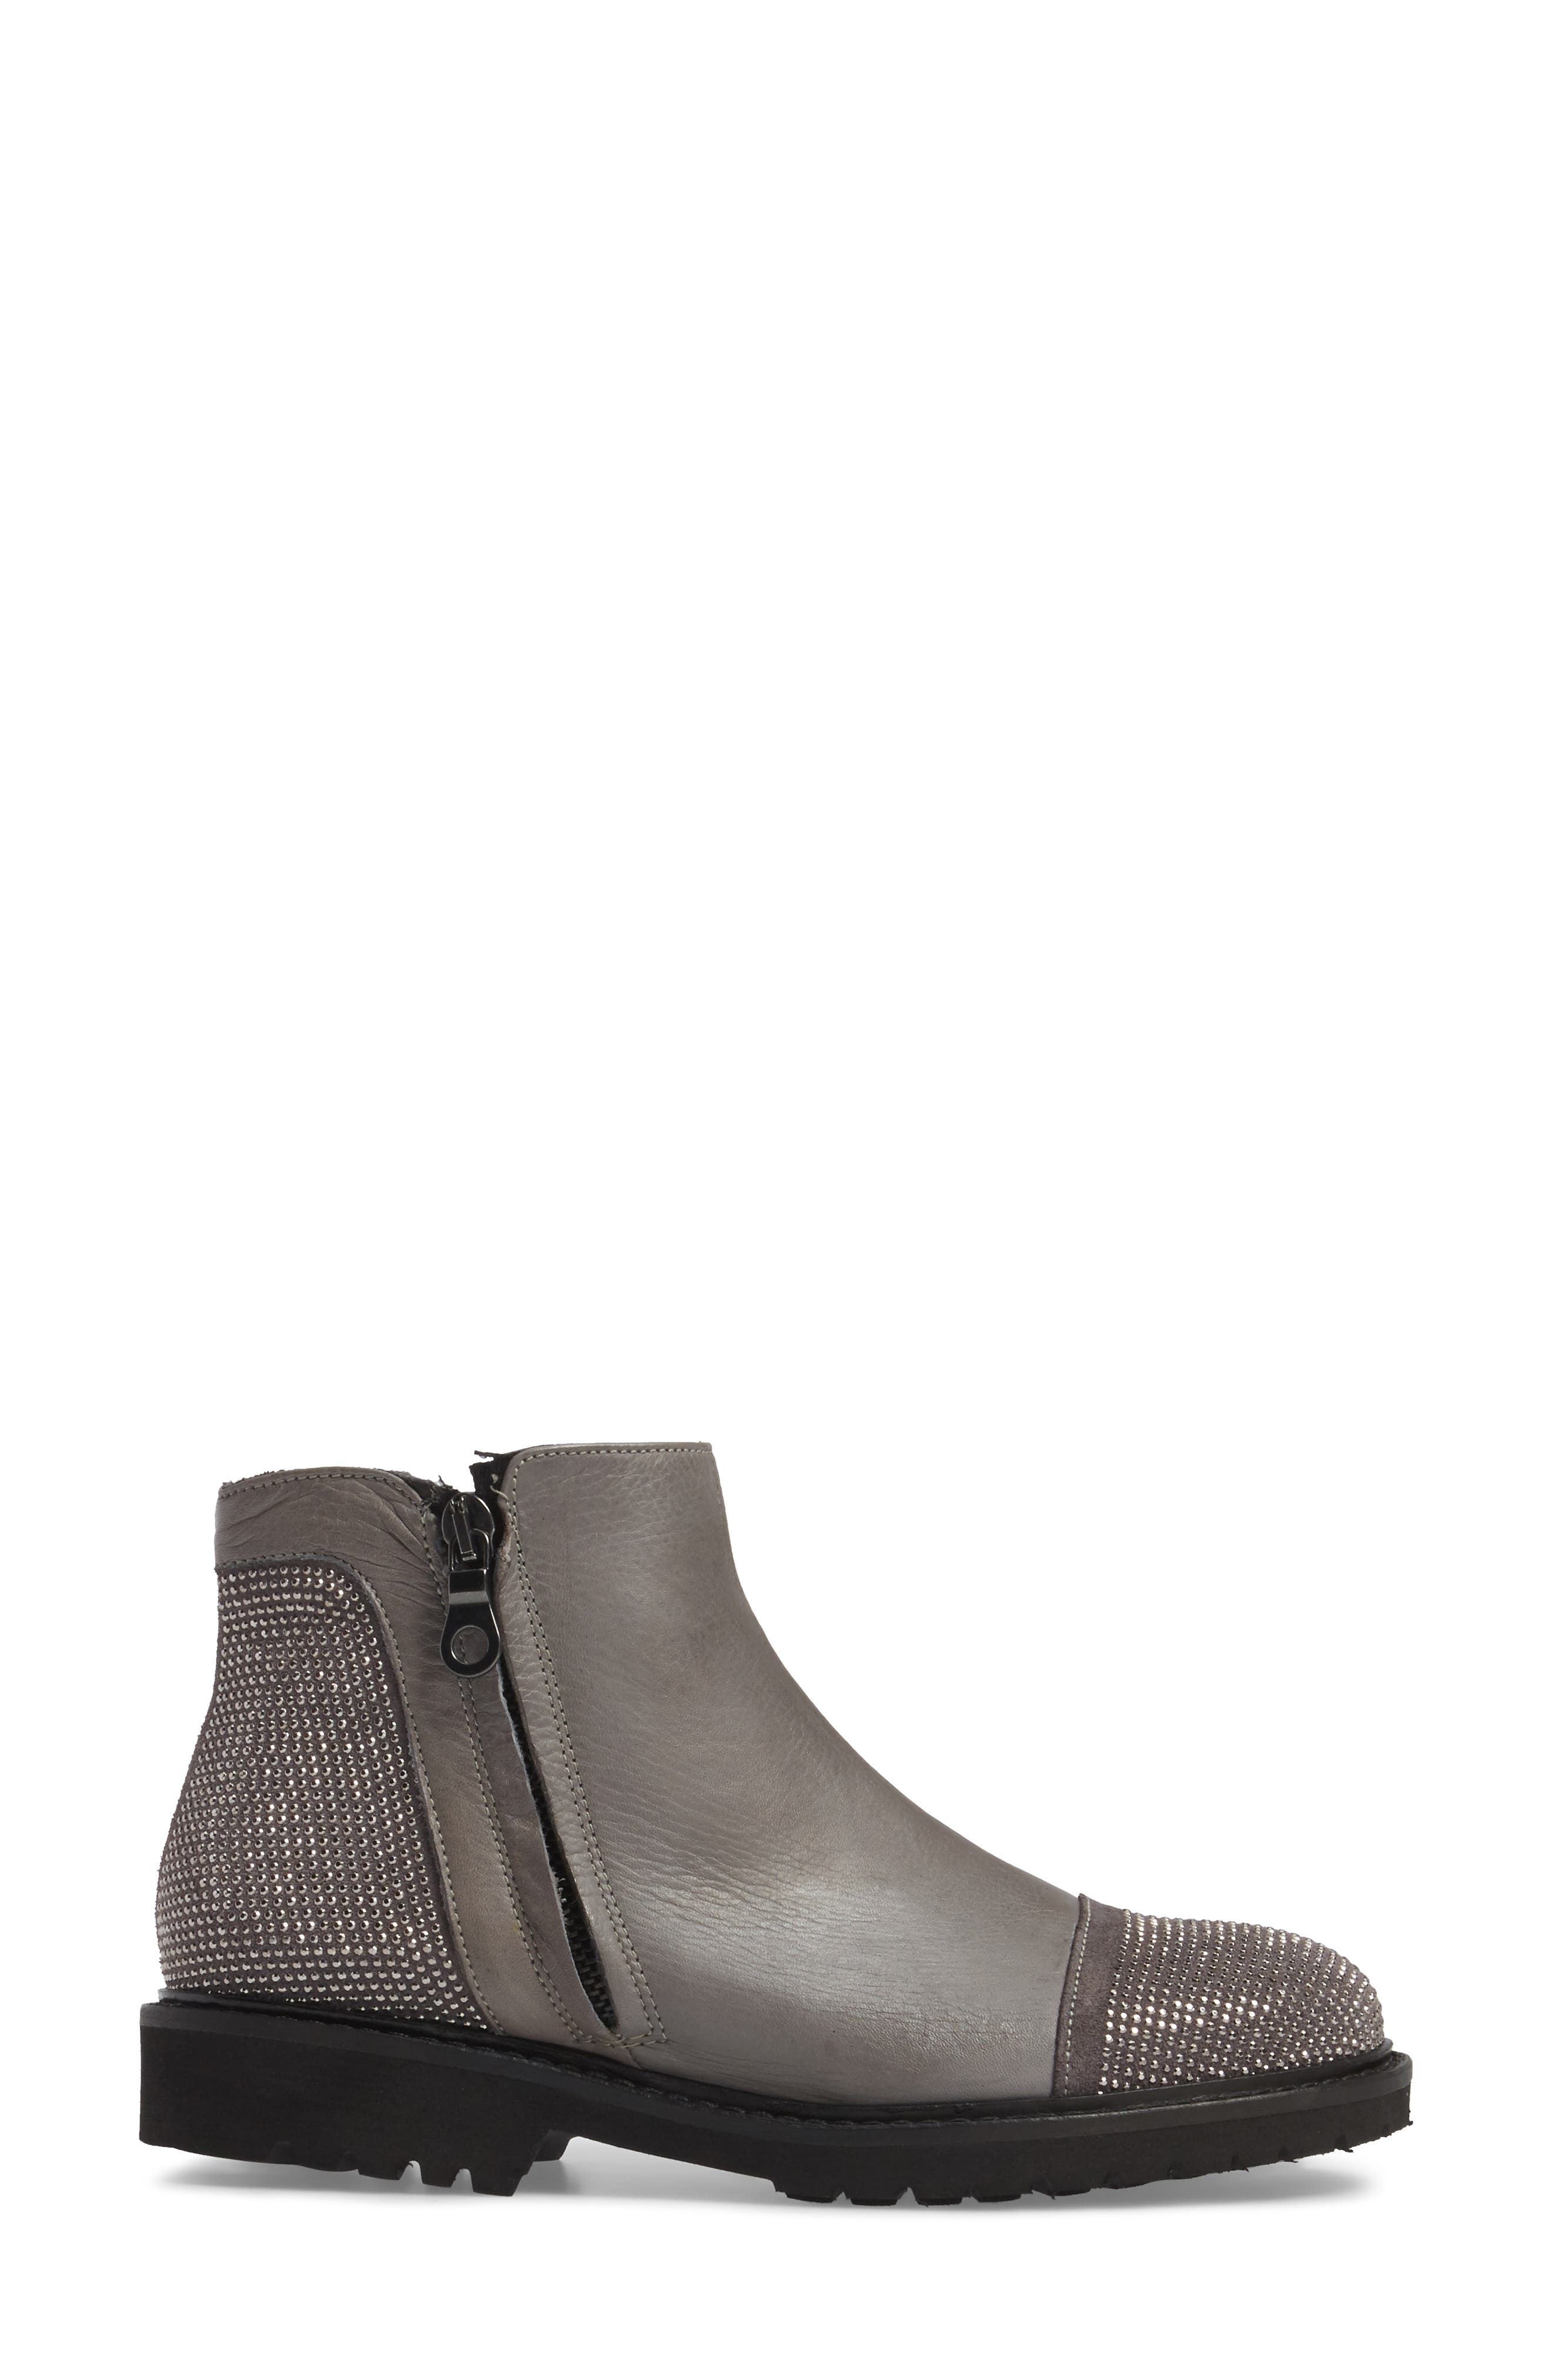 Alternate Image 3  - Sheridan Mia Viva Ankle Boot (Women)